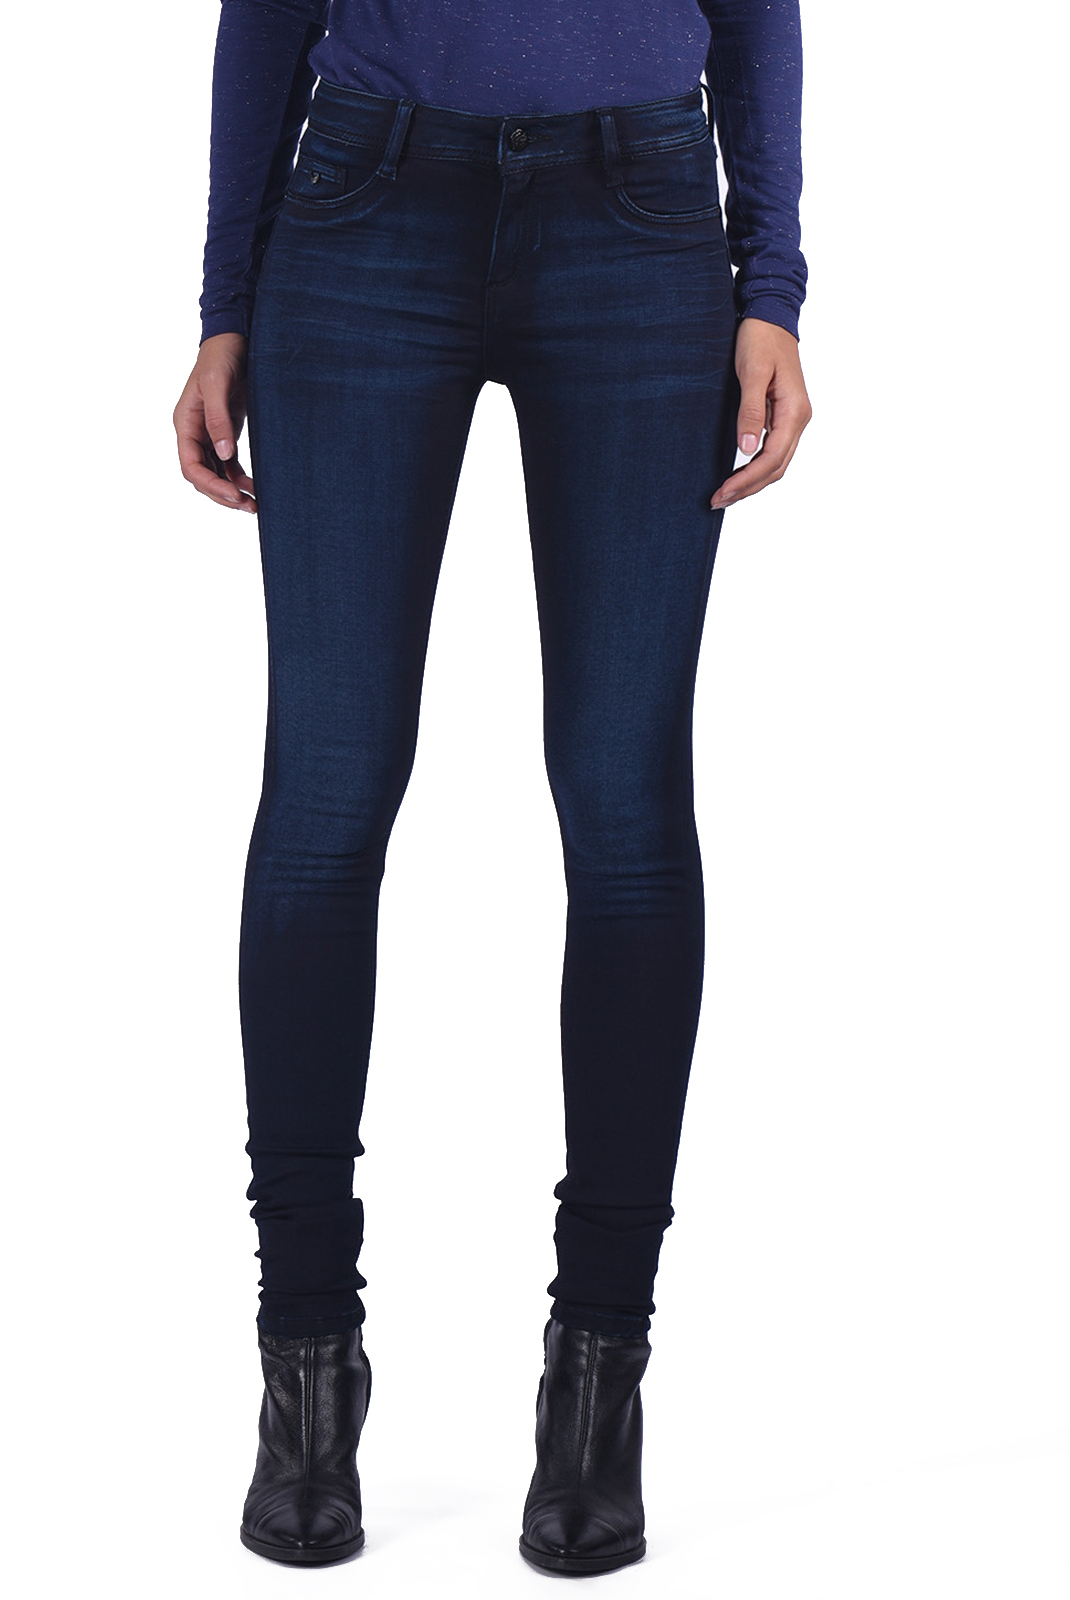 Jeans   Kaporal POWER H18W7 NIGHT